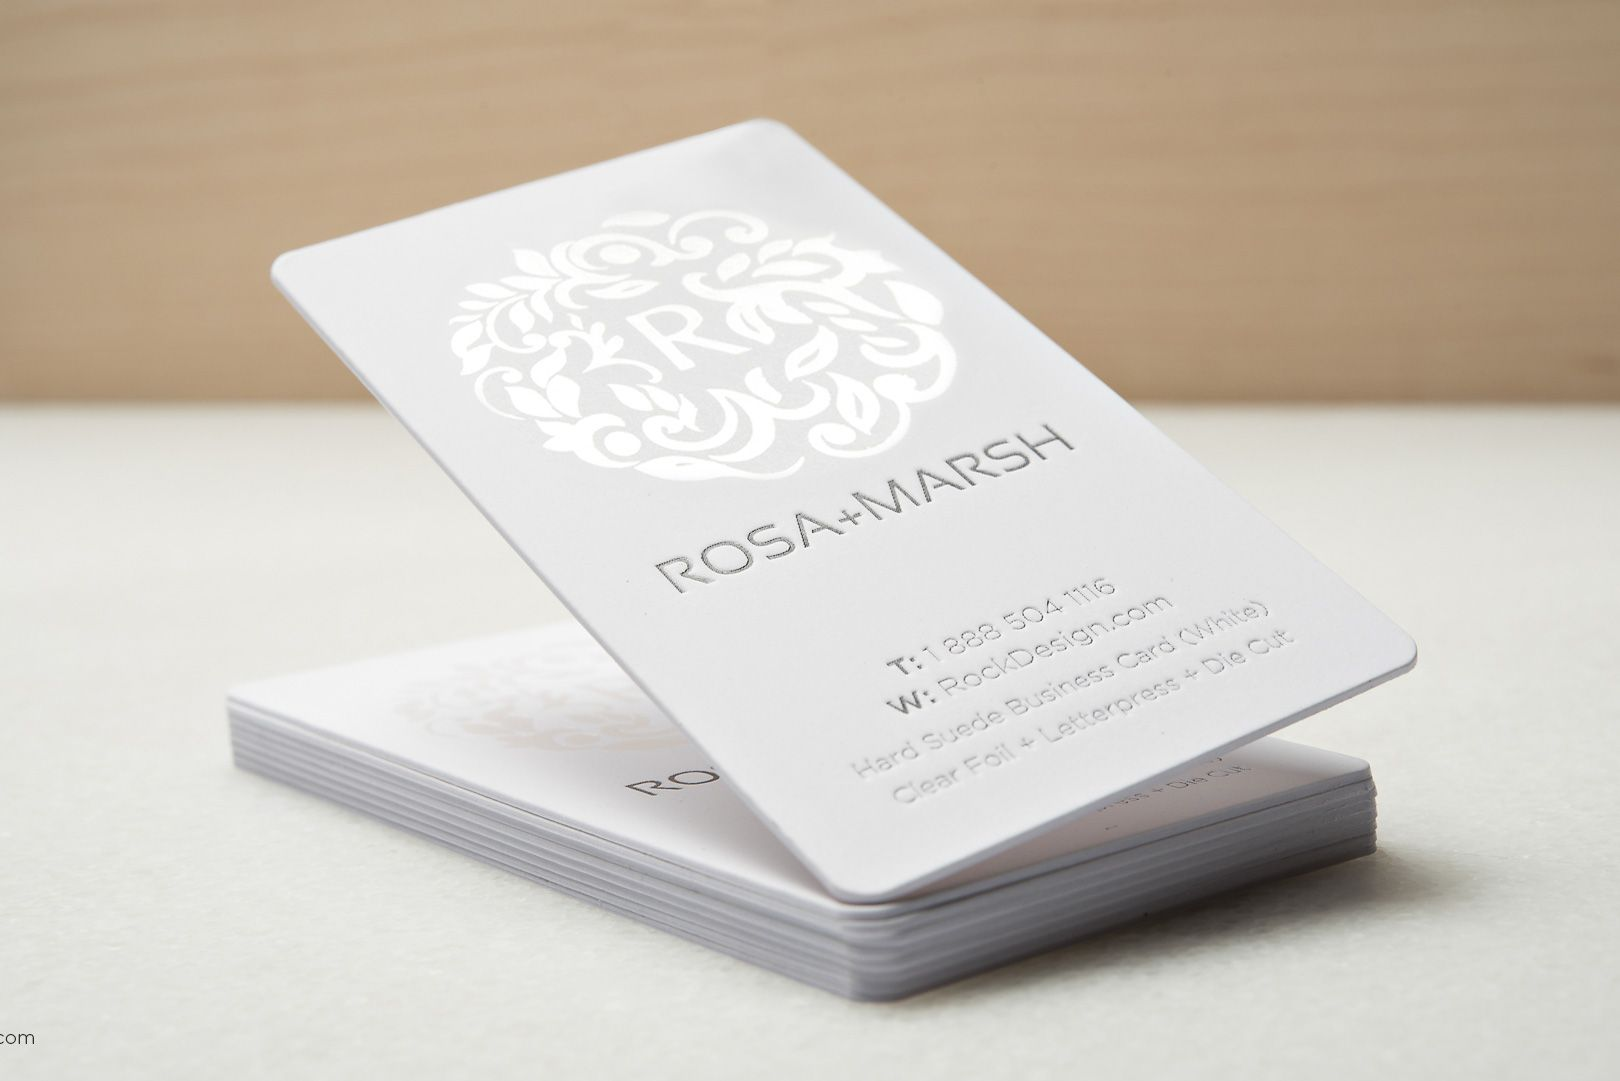 Elegant modern white suede business card with foil stamping and elegant modern white suede business card with foil stamping and letterpress rosa marsh rockdesign luxury business card printing reheart Choice Image